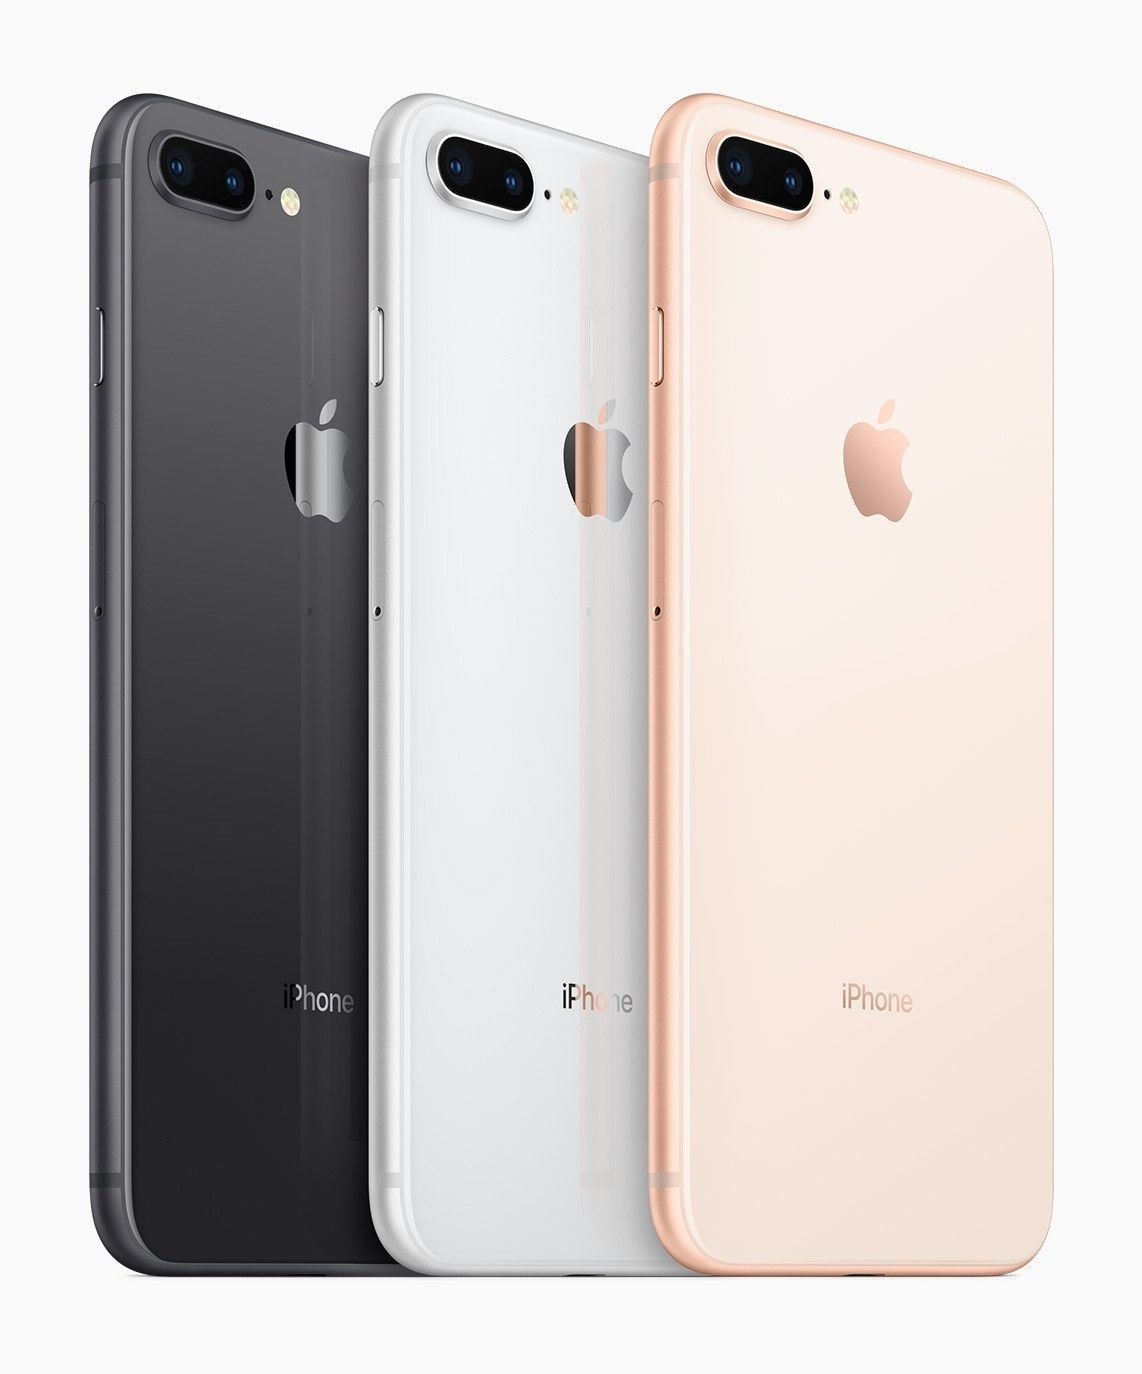 Details About Apple Iphone 8 Plus 64gb All Colors T Mobile At T